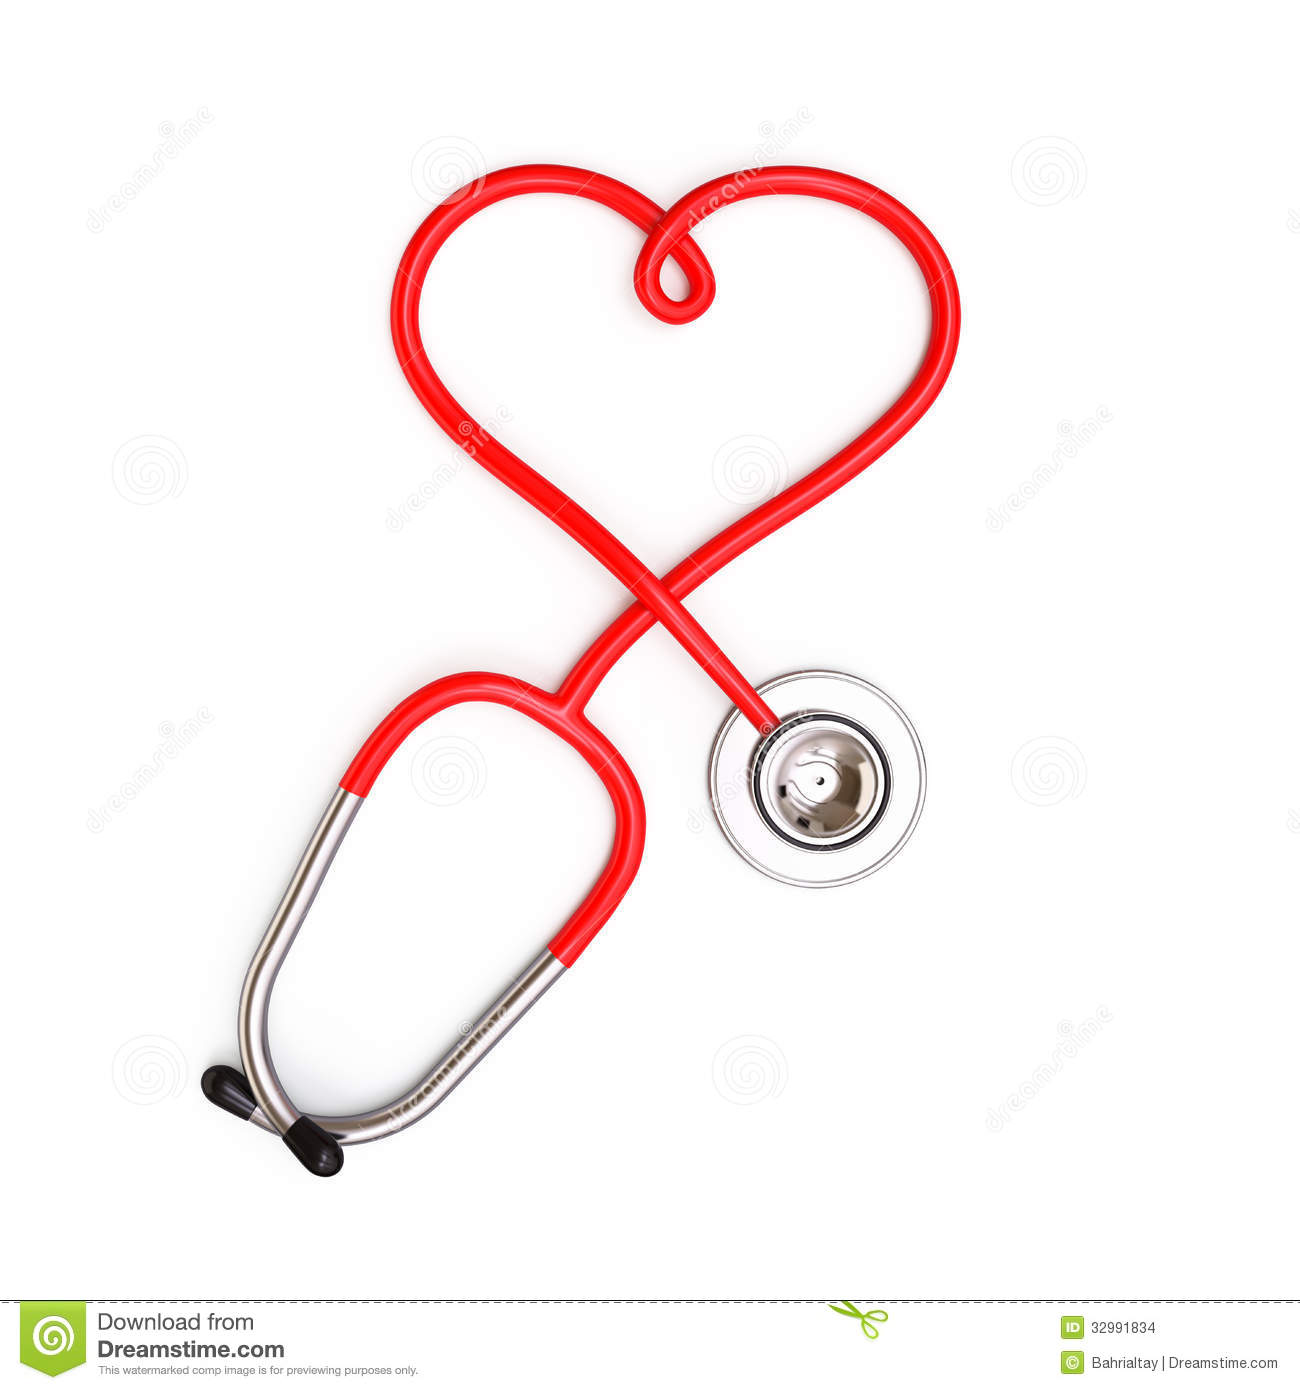 Stock Images: Heart shape from stethoscope. Image: 32991834